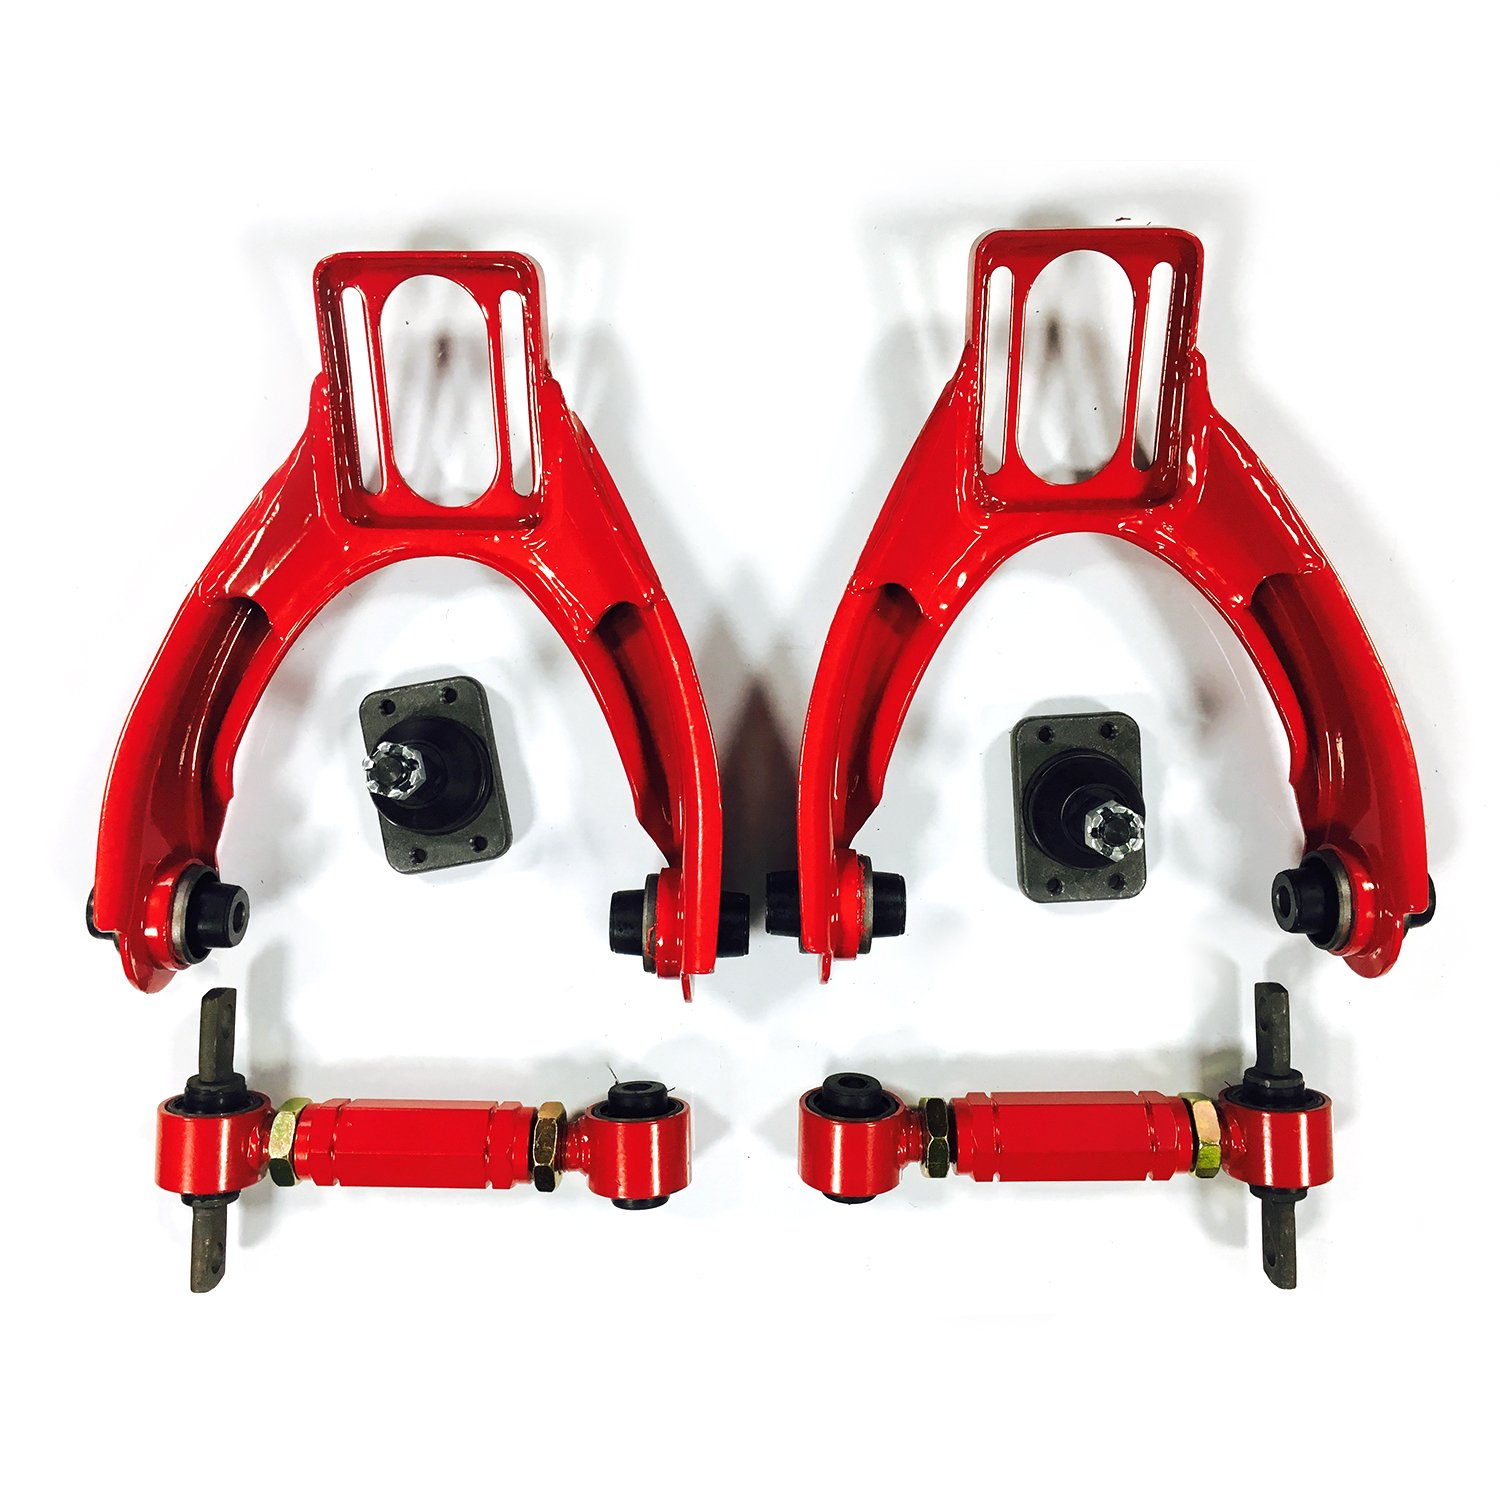 4PC Front & Upper Racing Suspension Steel Adjustable Camber Arm Control Kit for 1996 1997 1998 1999 2000 Honda Civic 1.6L L4 by MILLION PARTS